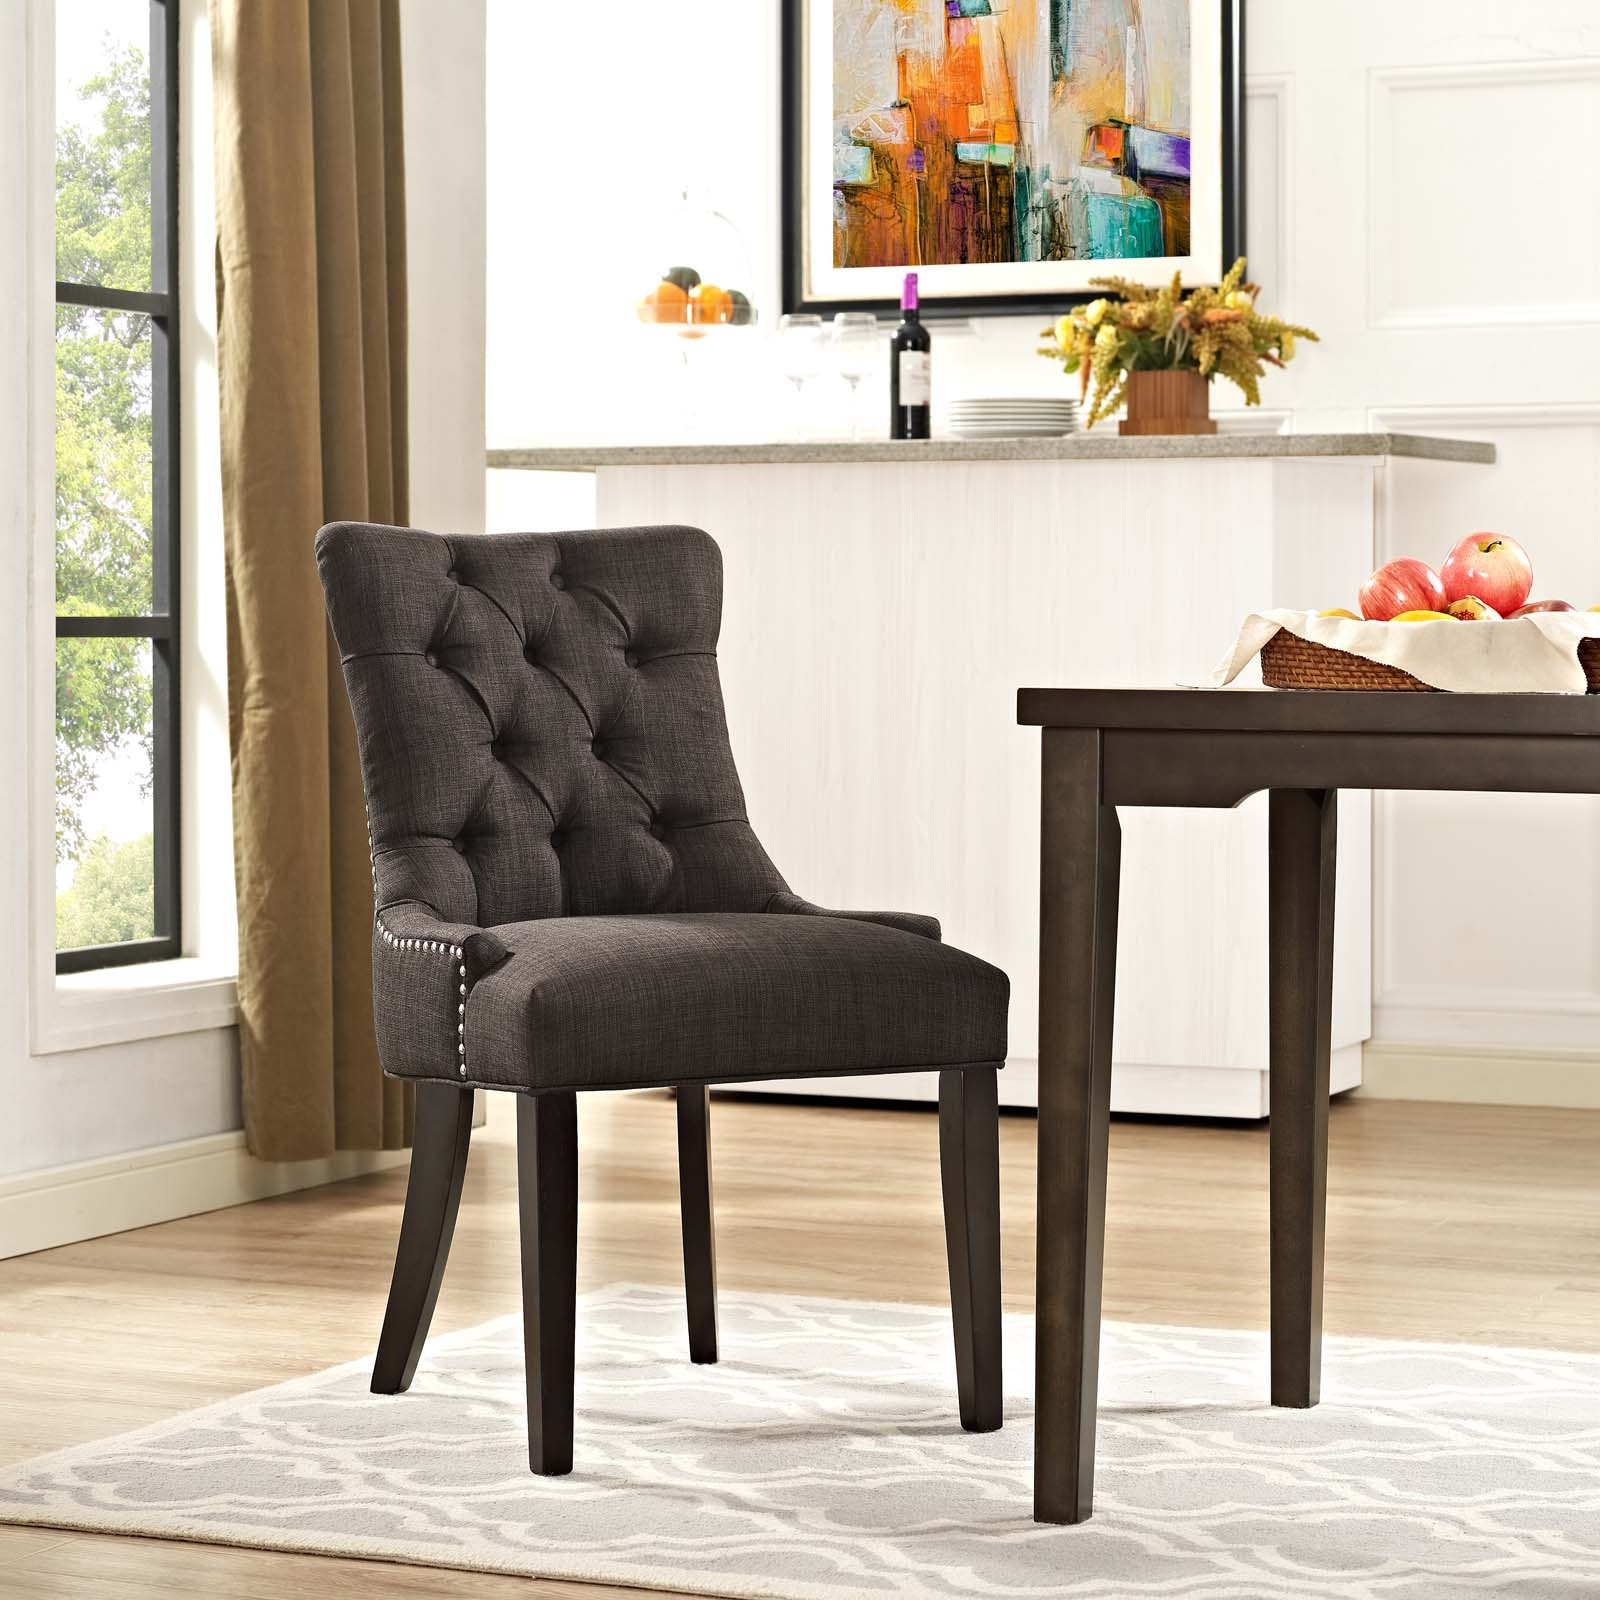 Regent Tufted Fabric Dining Side Chair in Brown